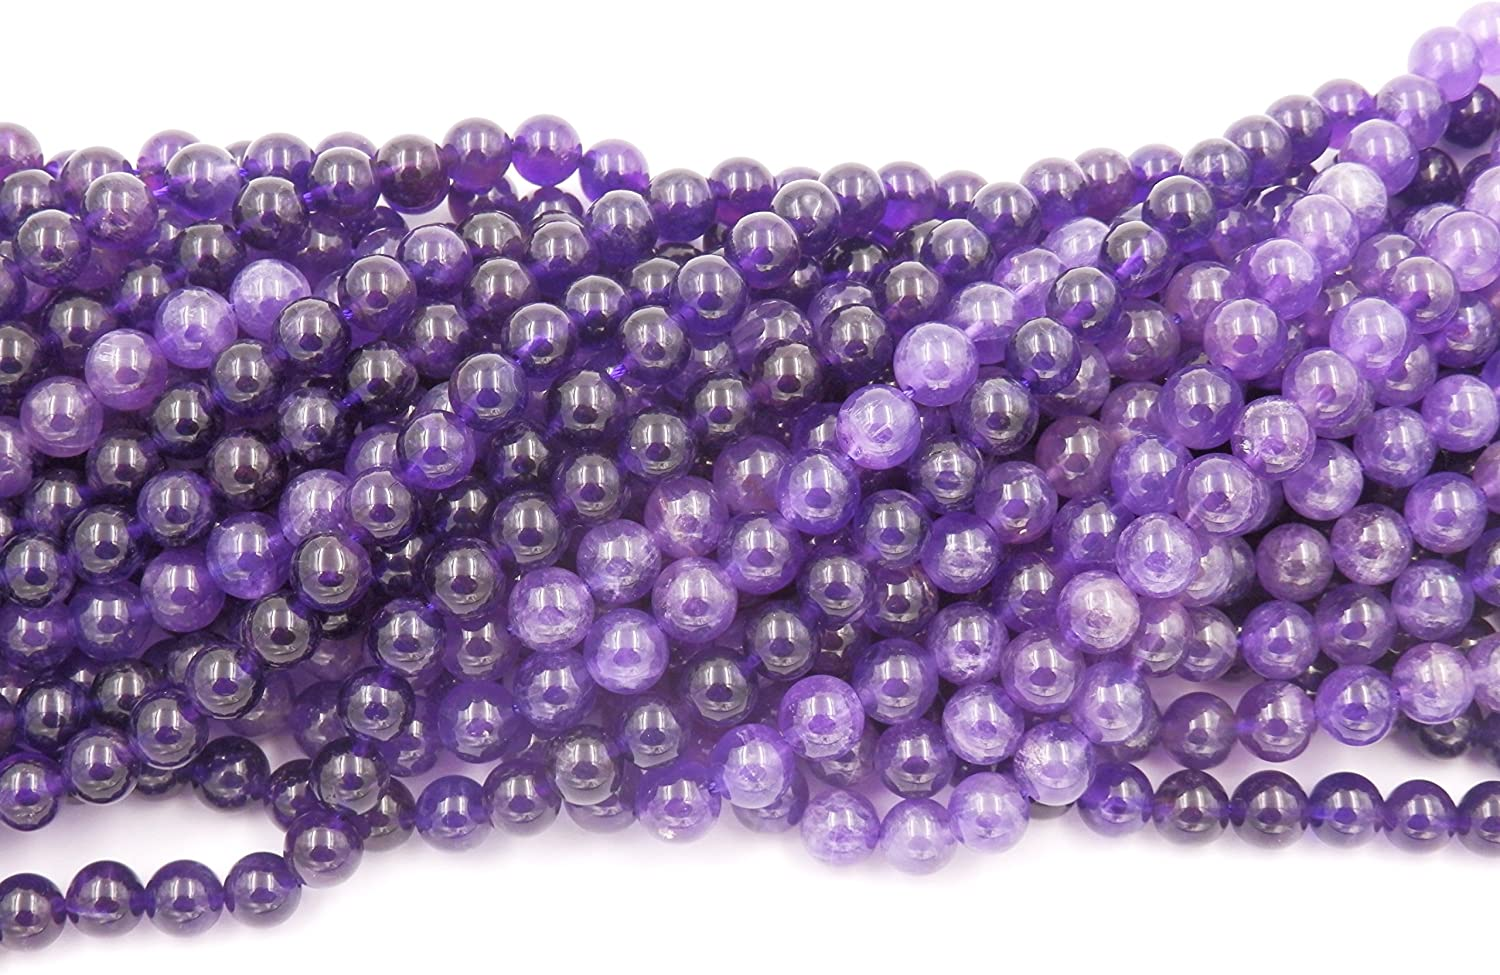 Gemstone Beads for Jewelry Making Amethyst, 6mm Sold per Bag 5 Strands Inside